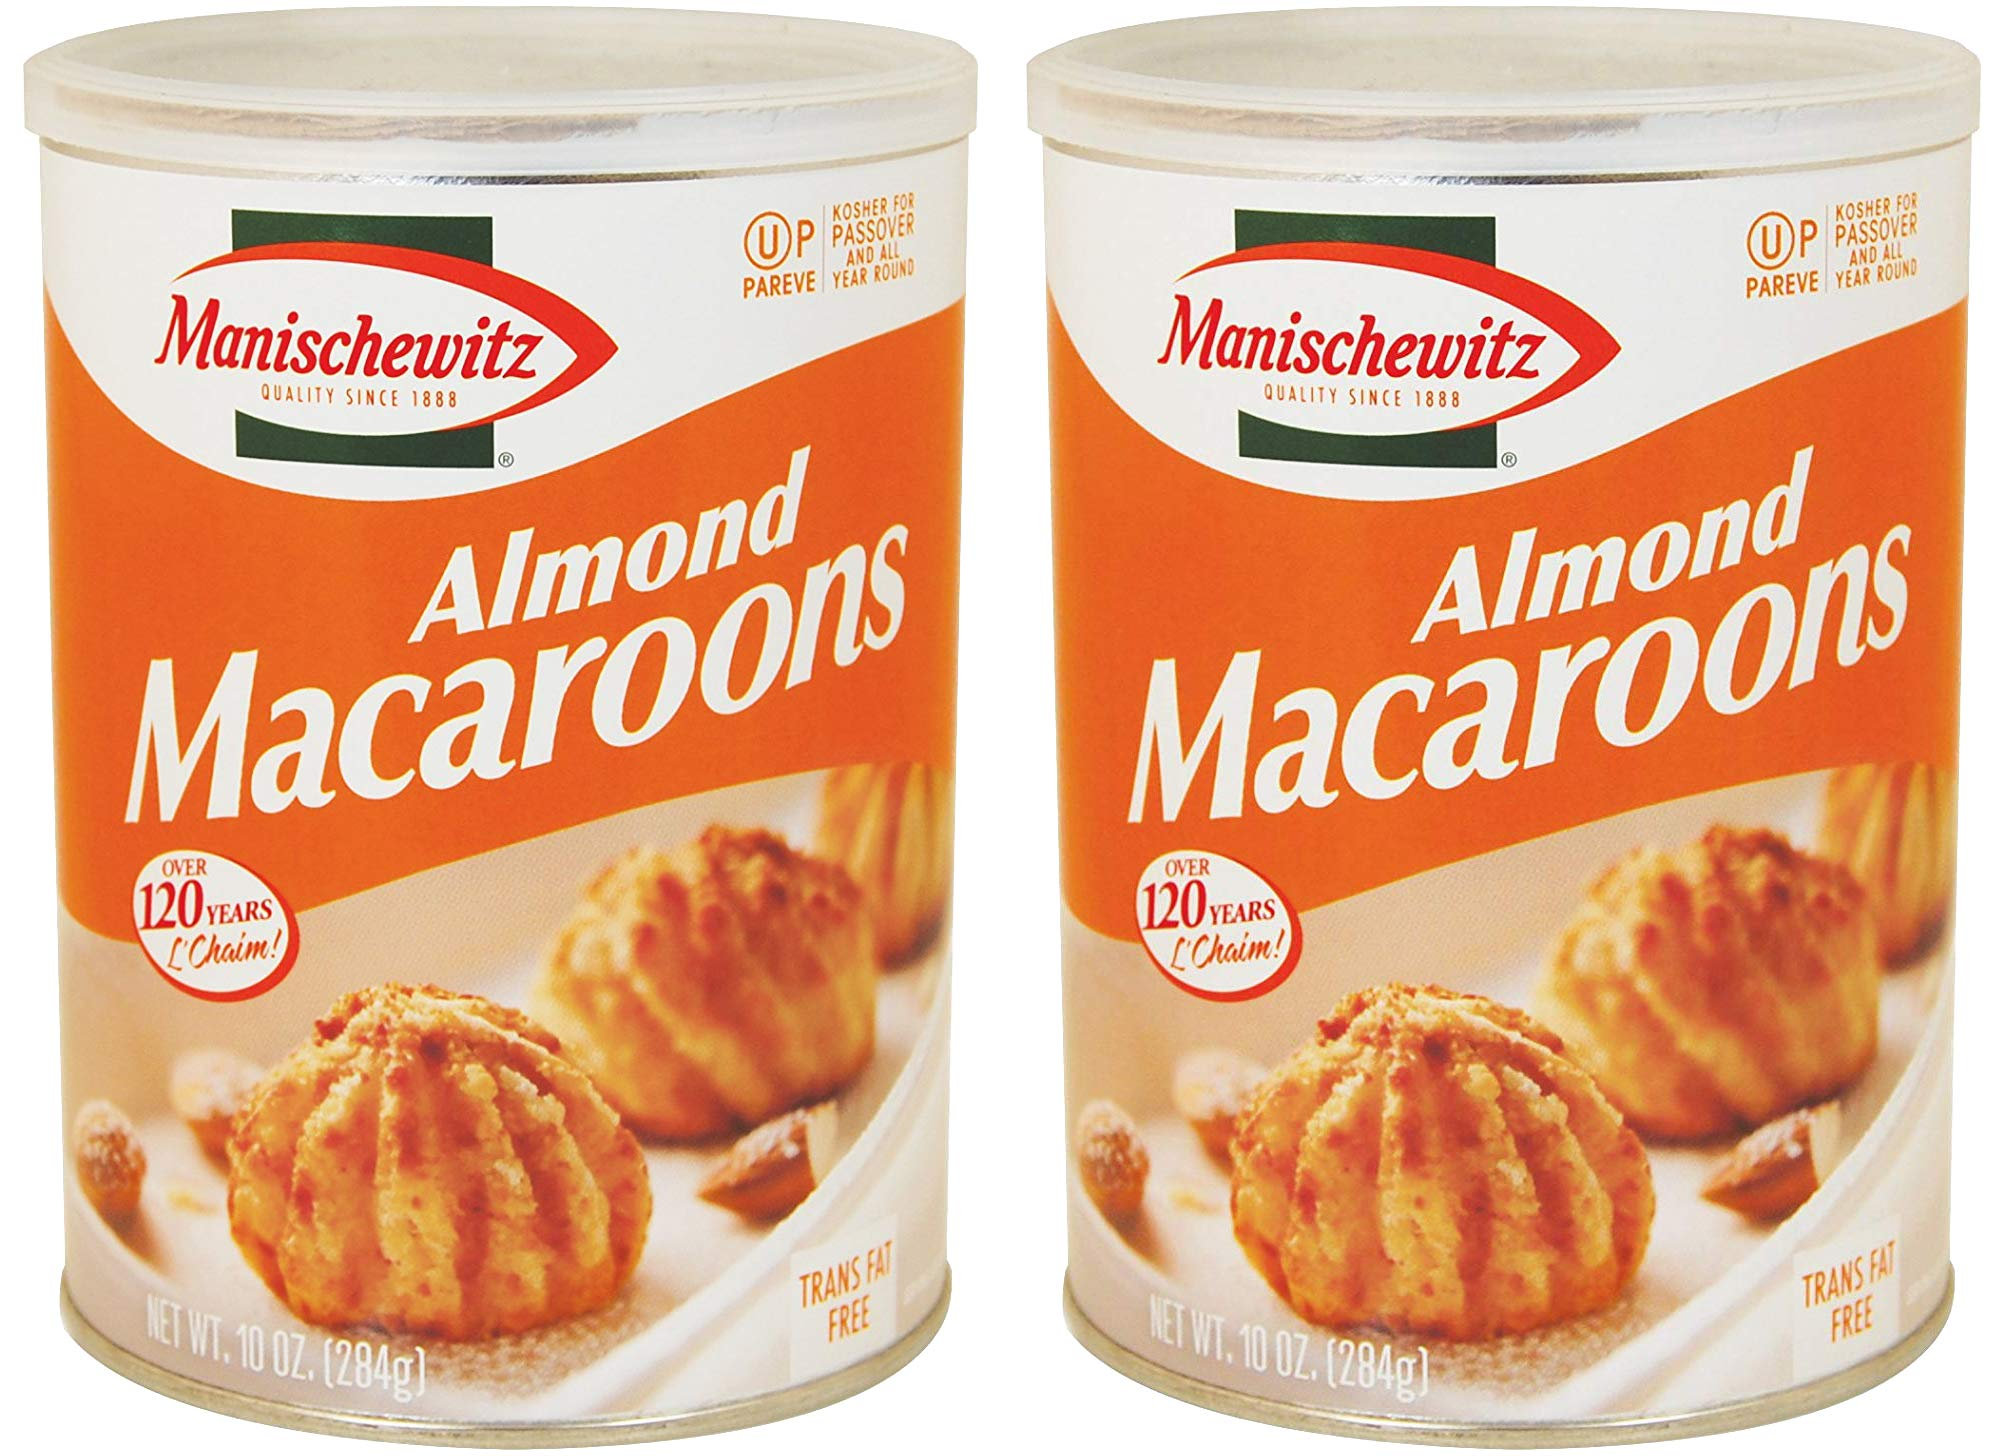 Manischewitz Macaroon Almond, Kosher For Passover, 10 Ounce Canister (Pack of 2, Total of 20 Oz) by Manischewitz